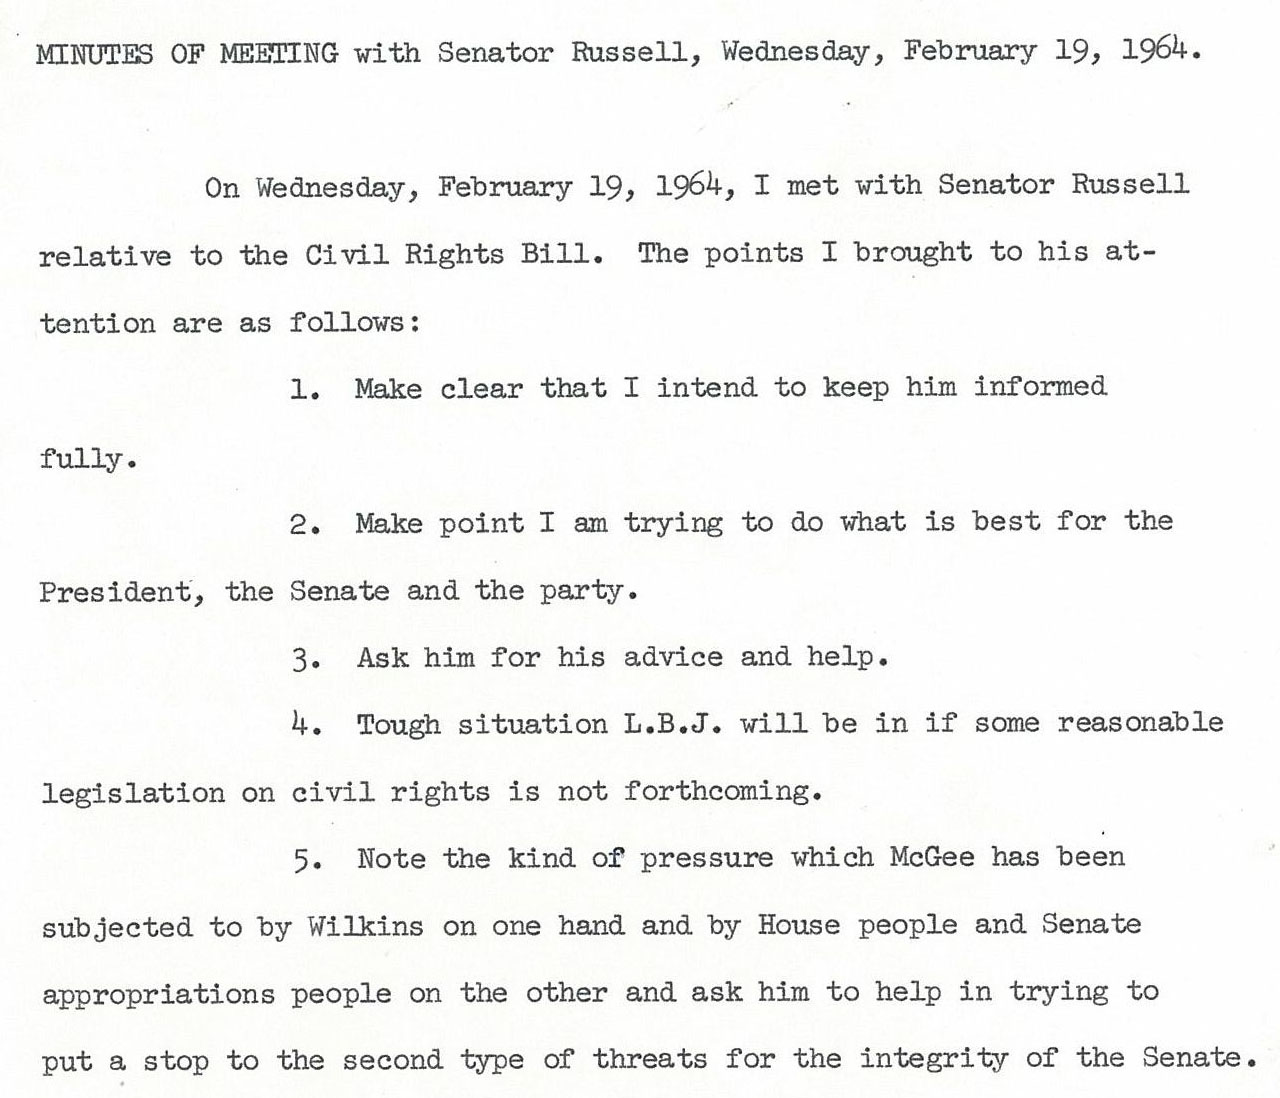 civil rights exhibits lib umt edu senator mike mansfield and senator richard russell meeting minutes 19 1964